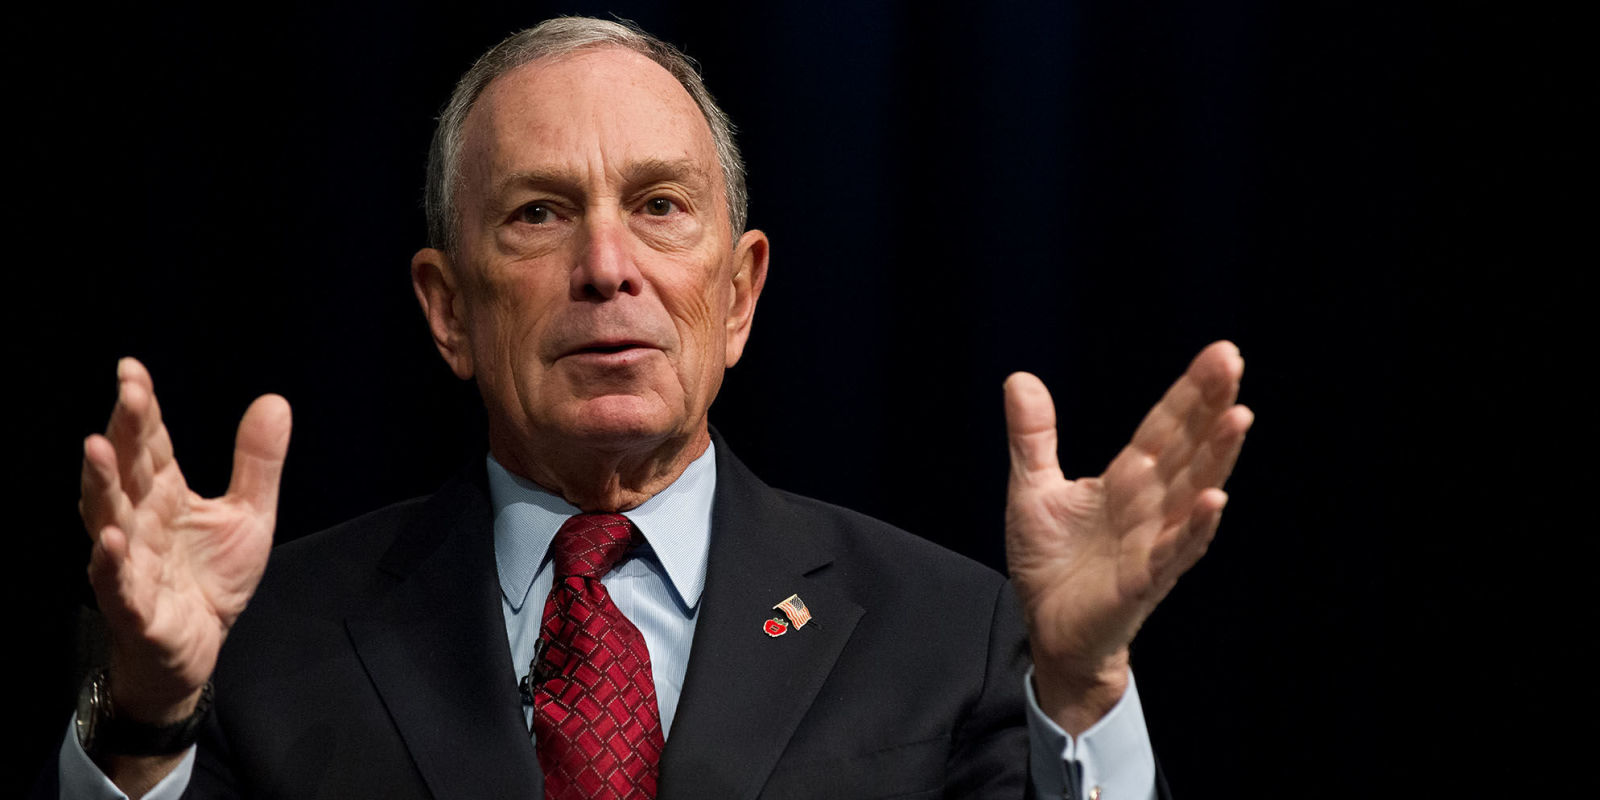 Michael Bloomberg explains the perfect job applicant and it's not what you would expect